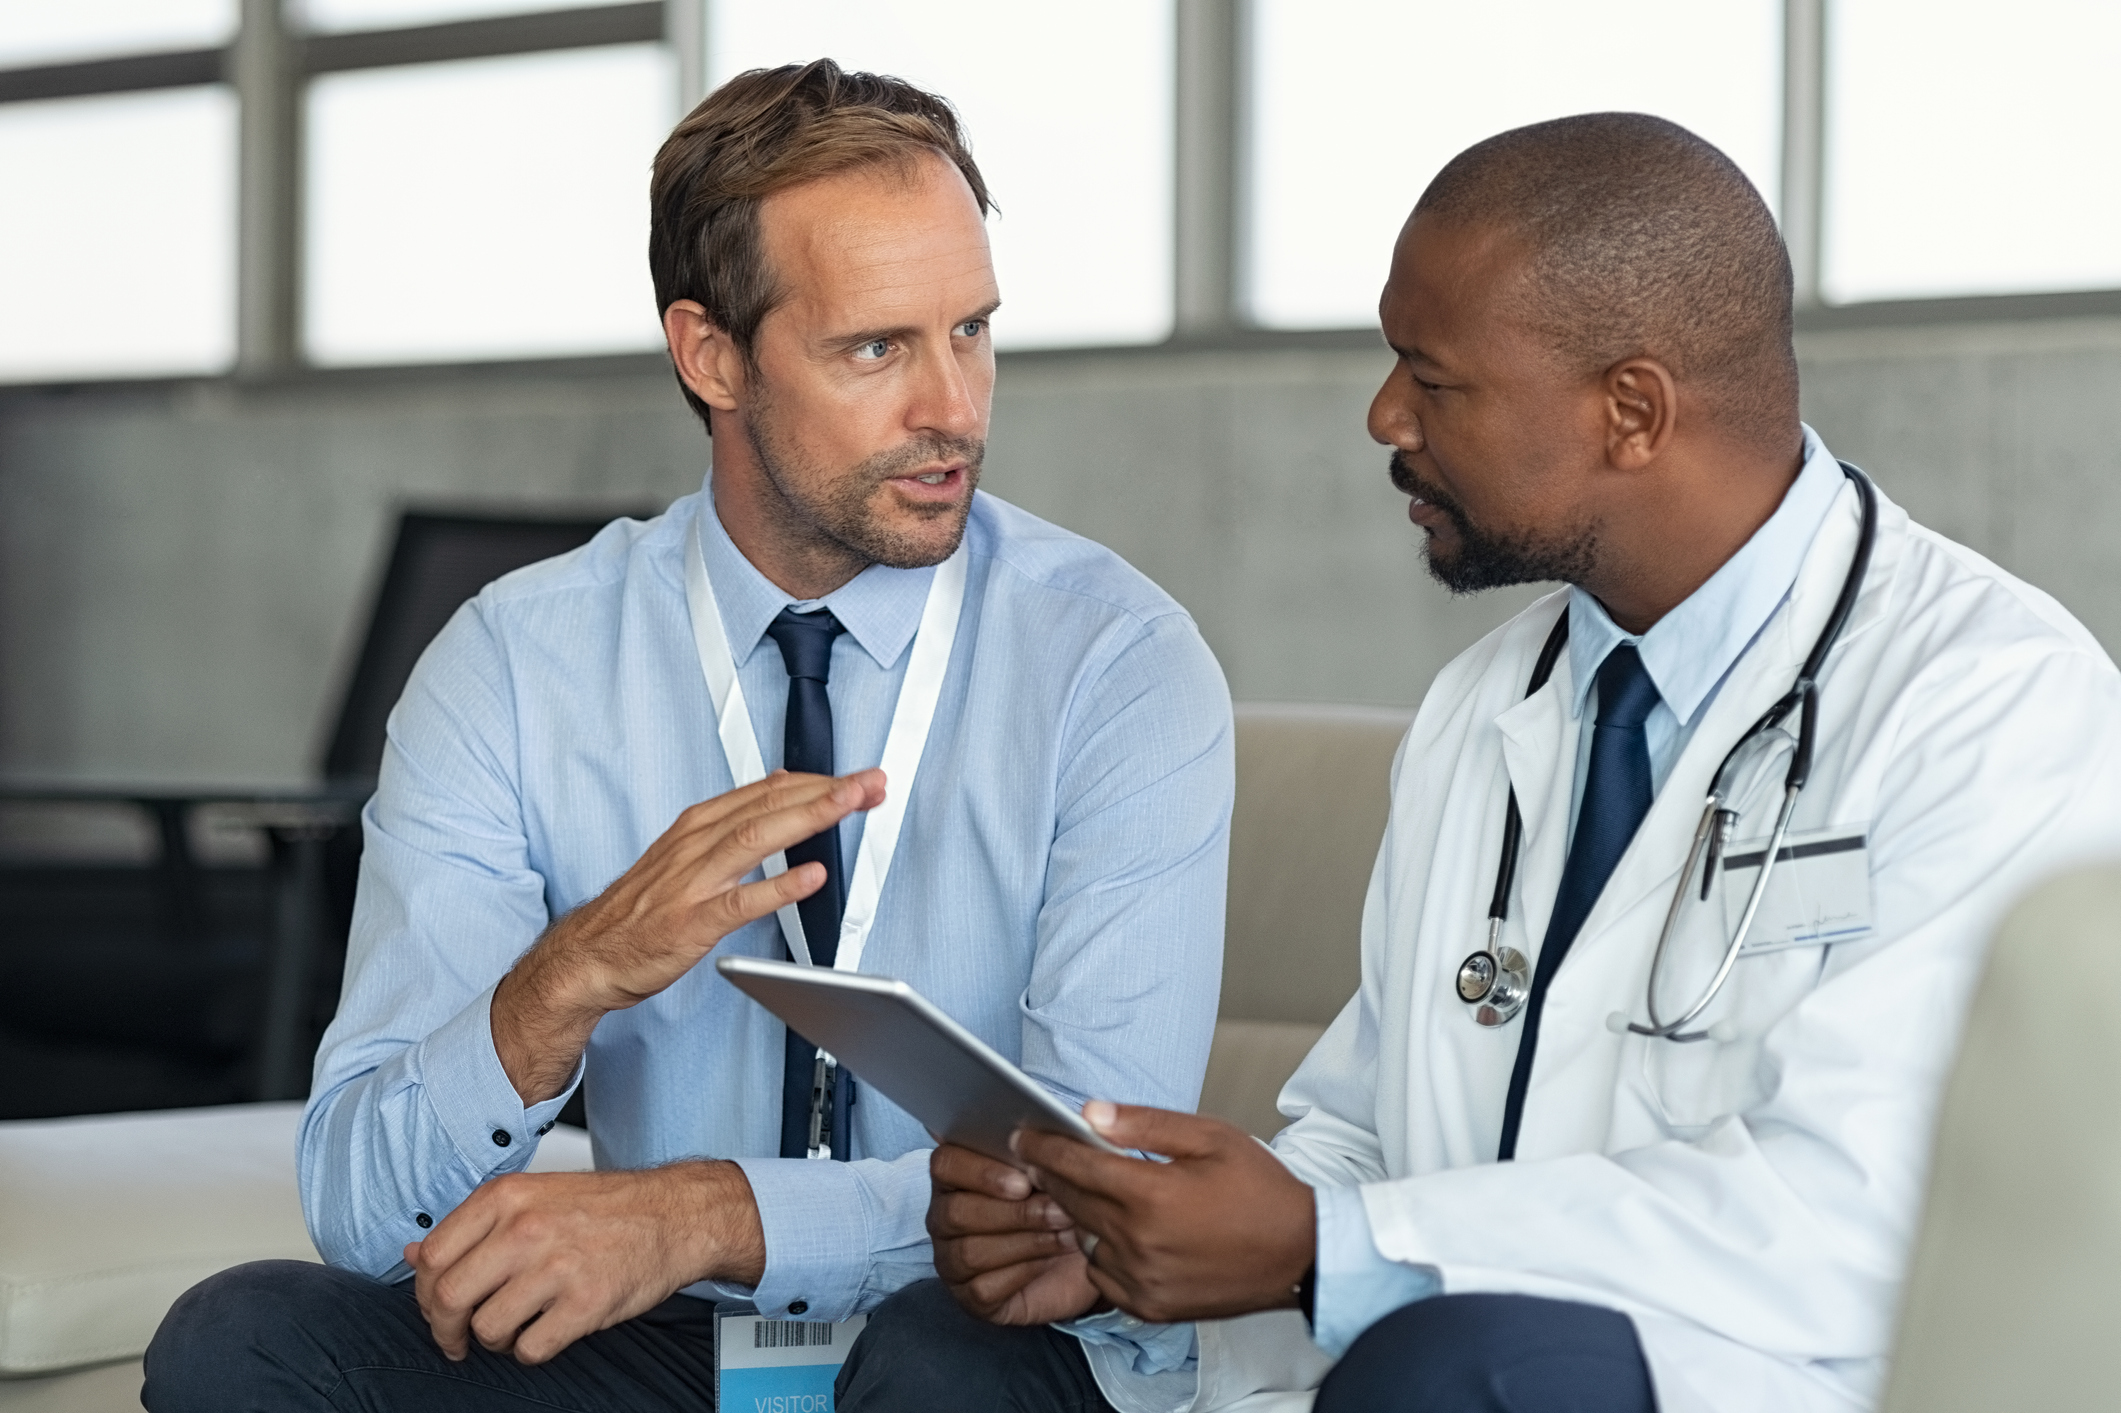 How To Effectively Shadow A Doctor: Do's and Dont's Of Physician Shadowing